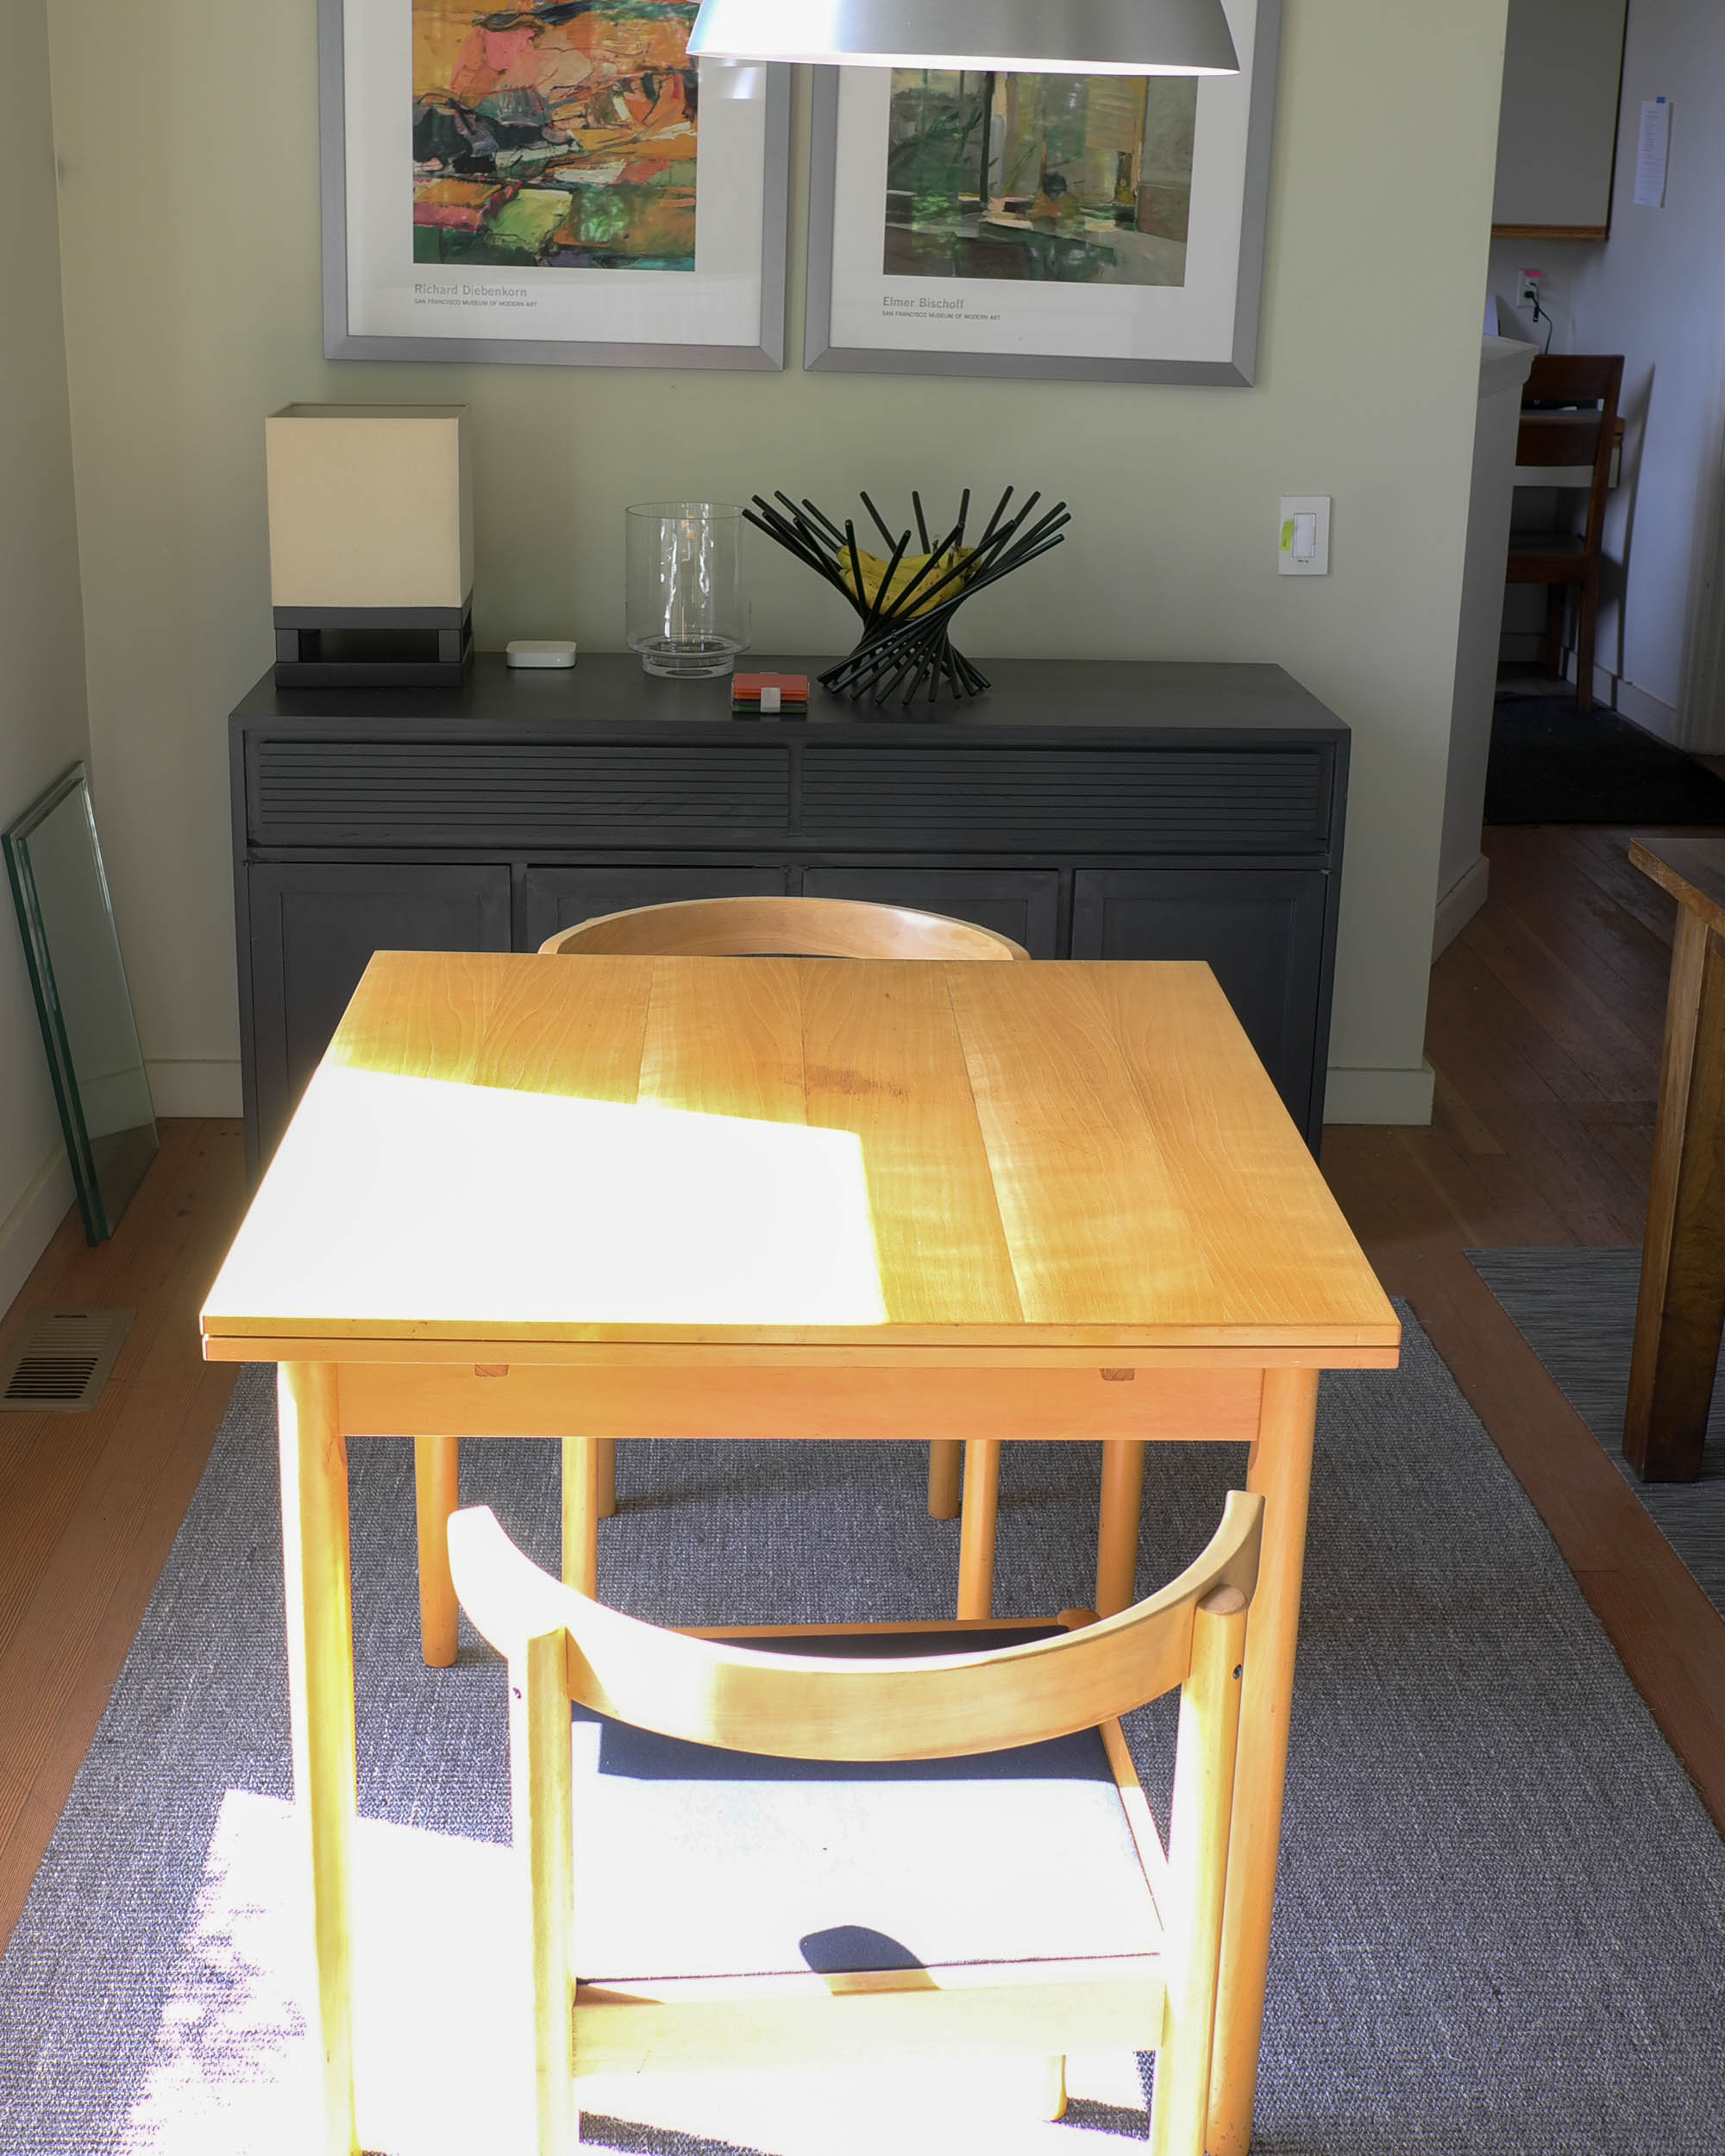 Center table surface sanded bare and refinished, May 2019.  Click to enlarge.